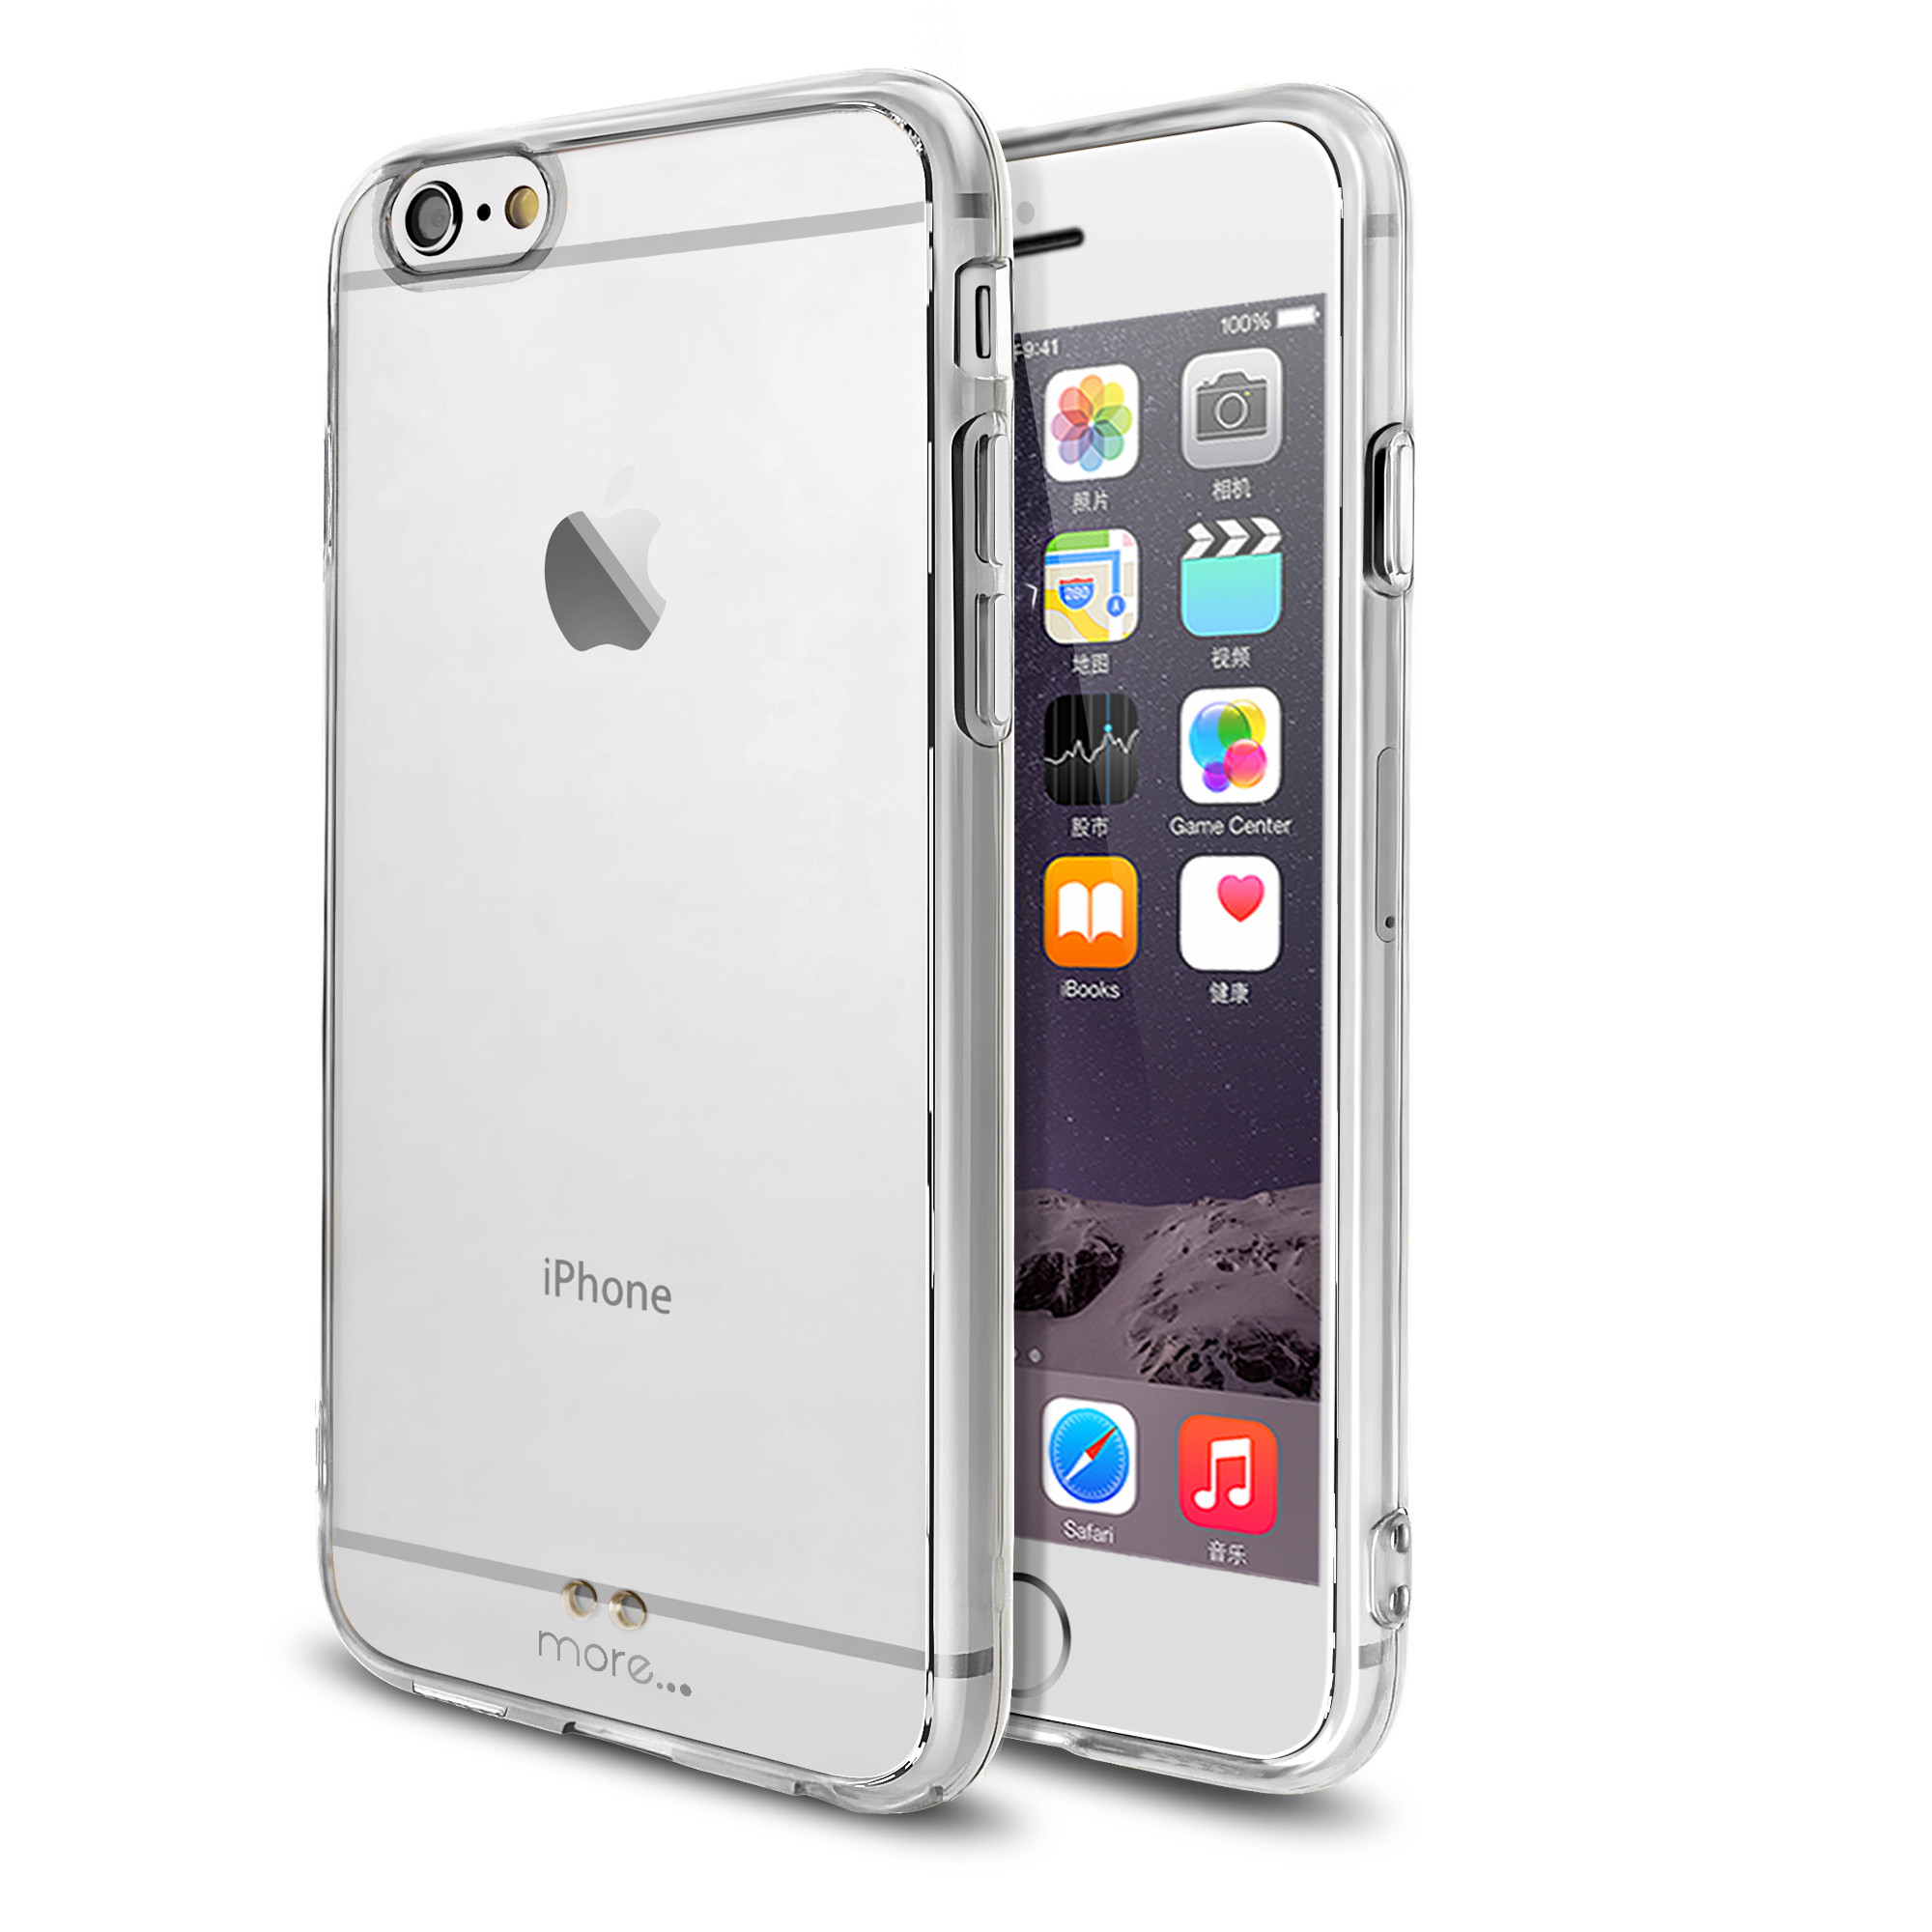 More Ultra Thin BumperLicious Case + Clear Hard Back Series for iPhone 6S / iPhone 6